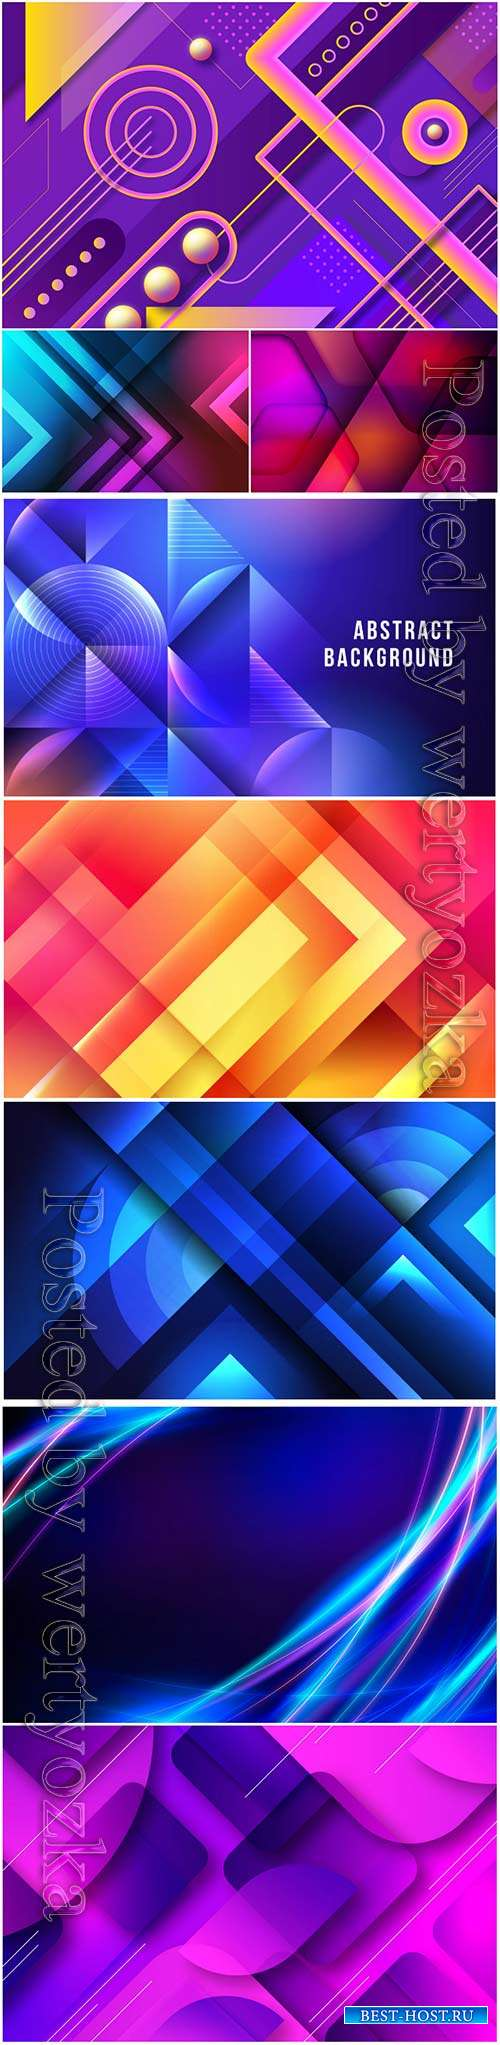 Overlapping blue forms background